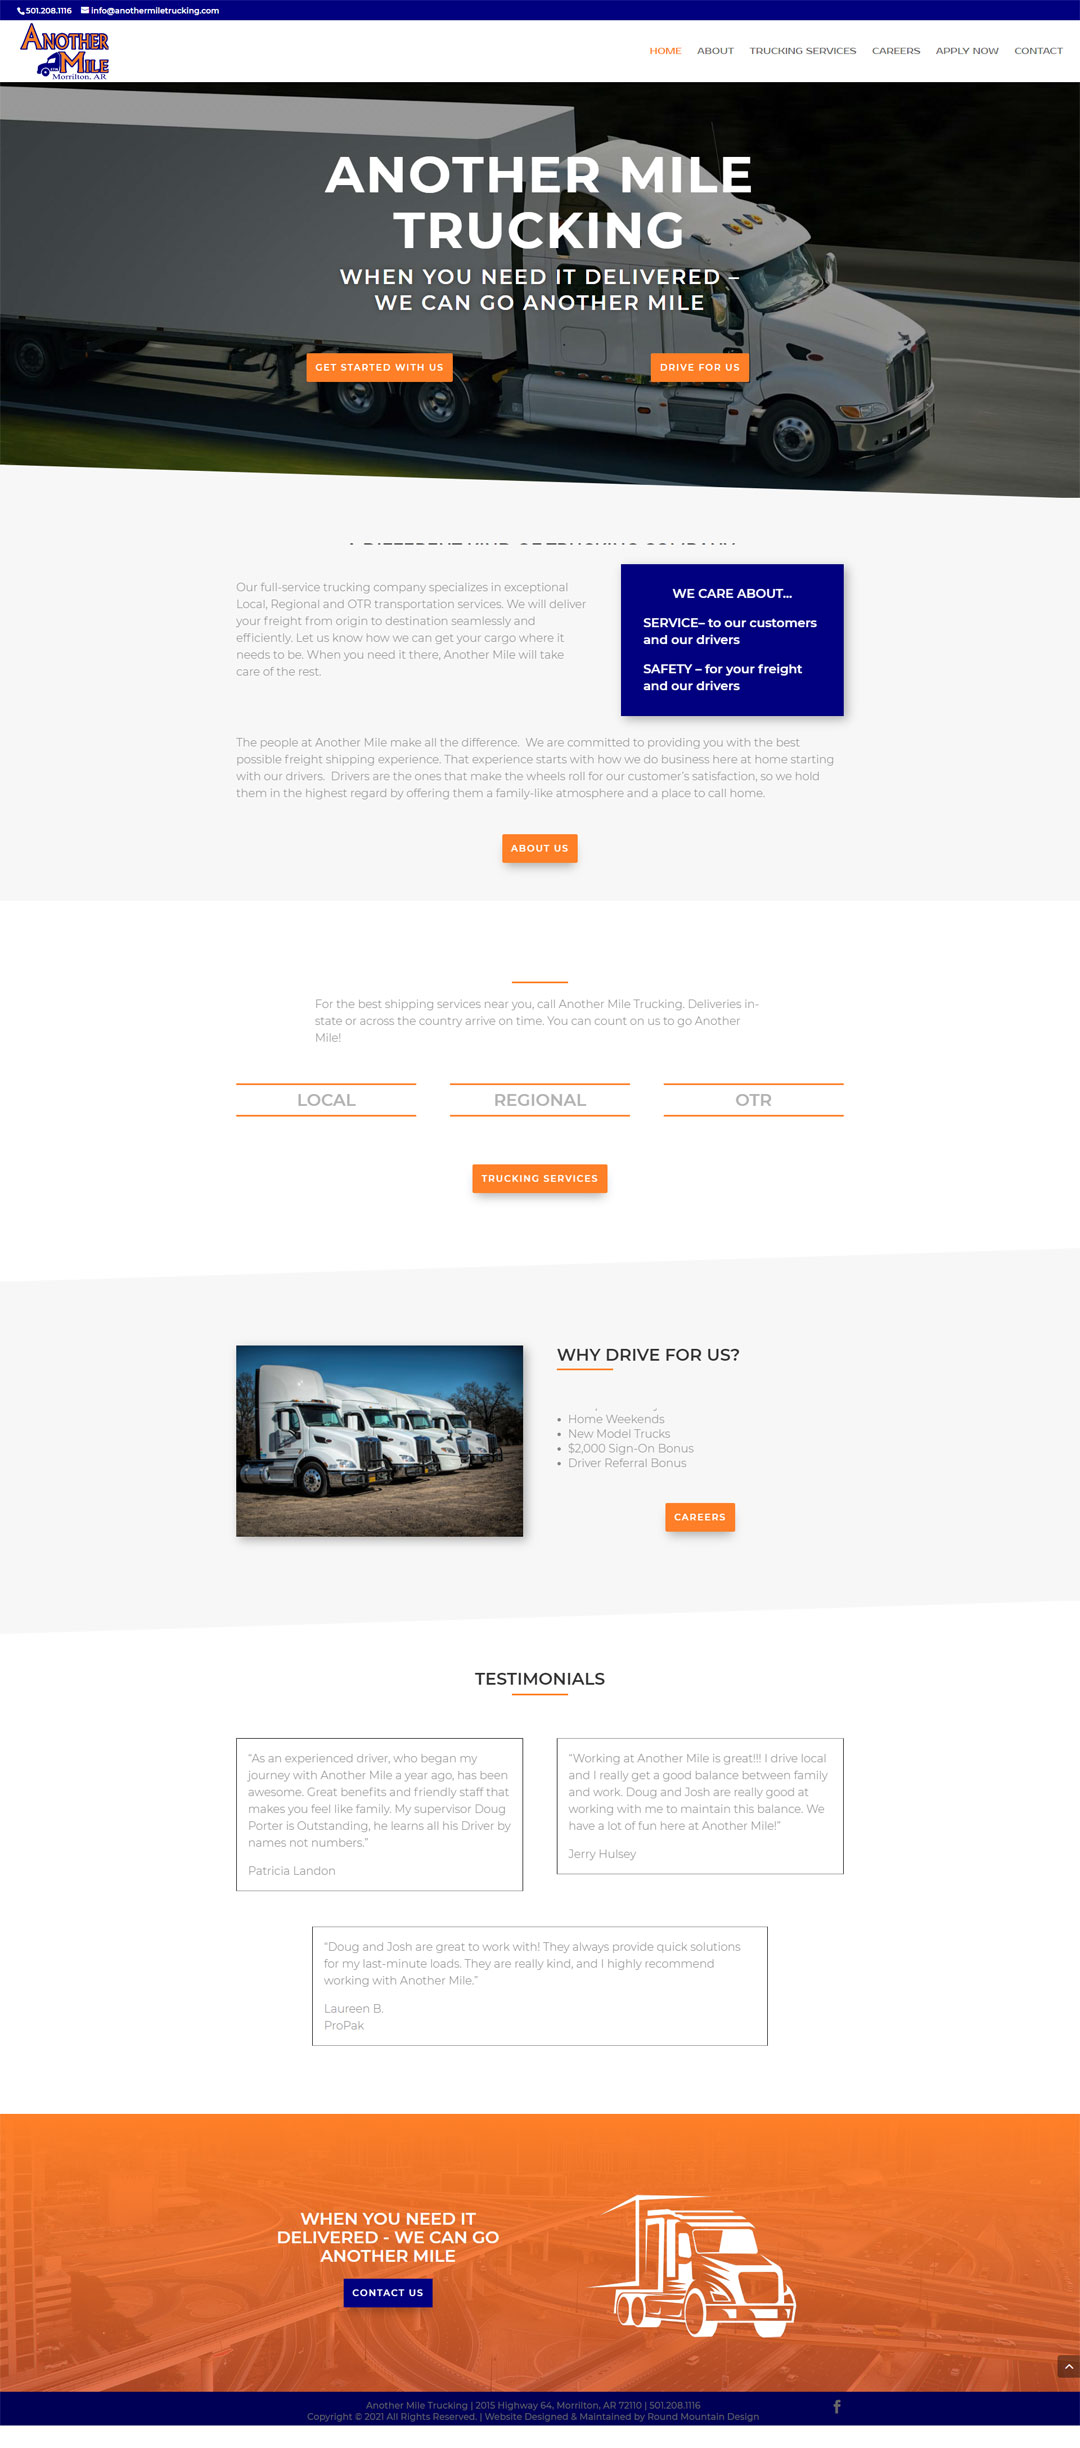 Web Design for Another Mile Trucking